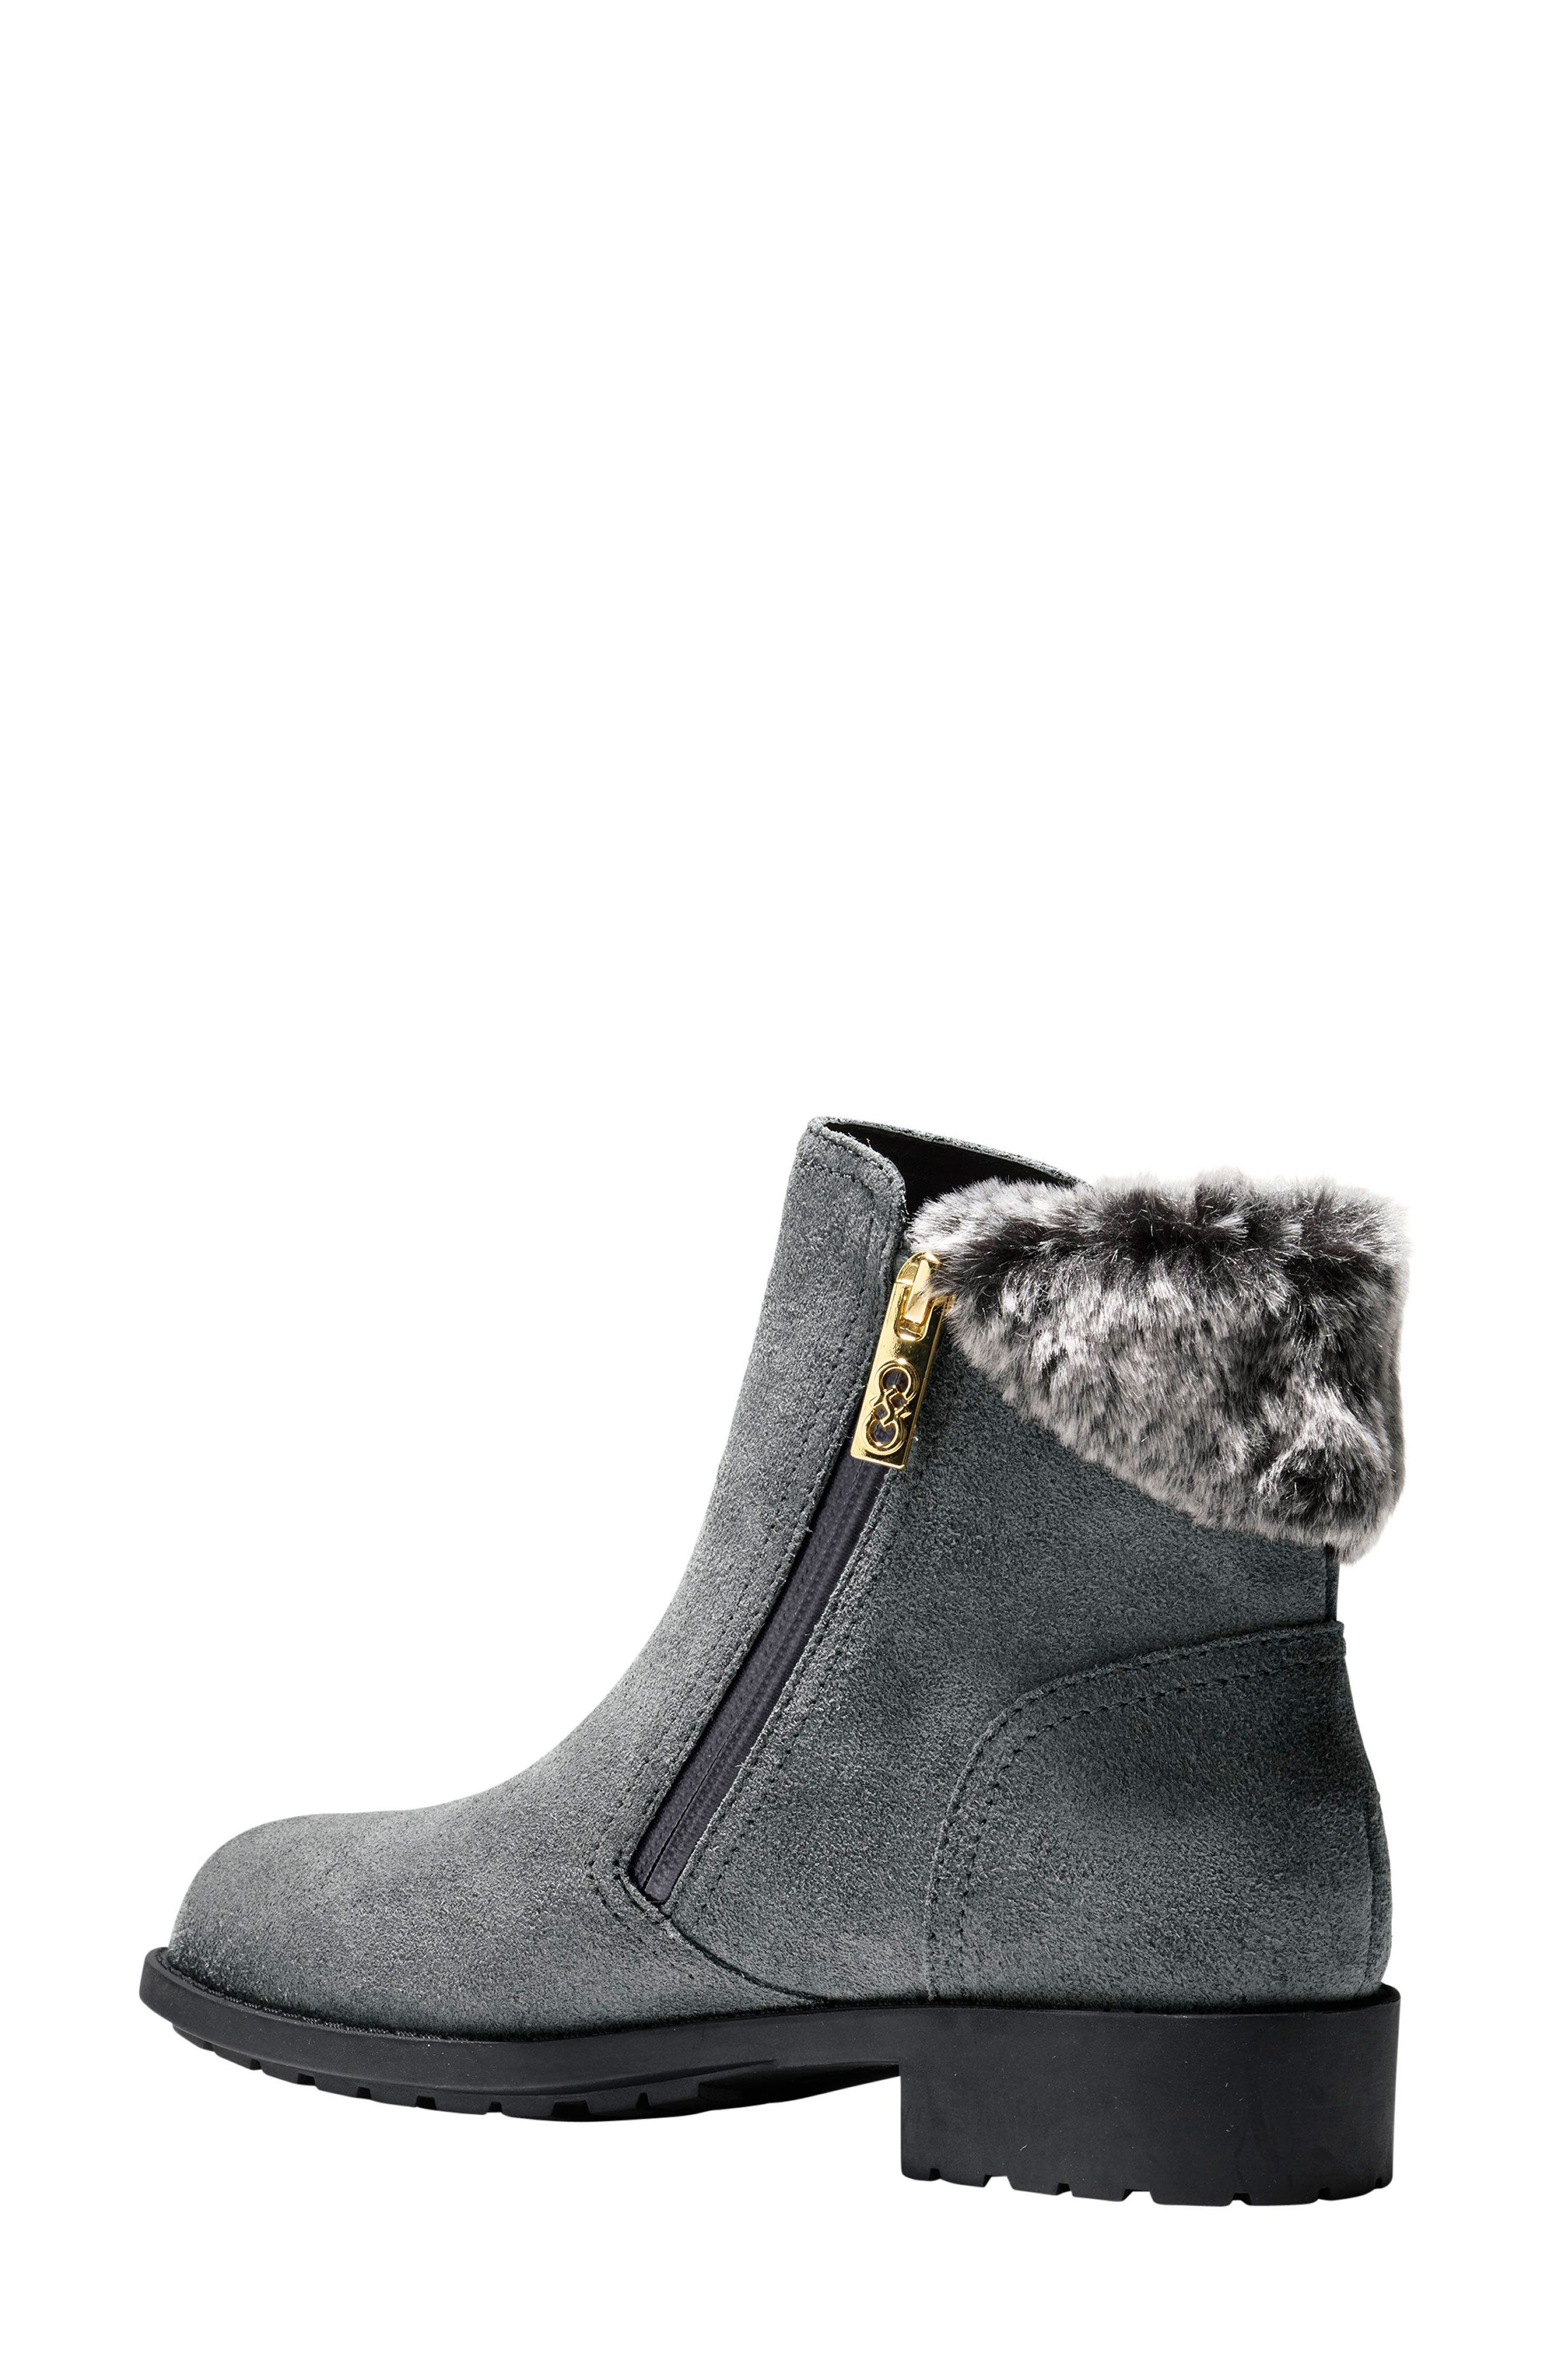 Quinney Waterproof Bootie with Faux Shearling Trim,                             Alternate thumbnail 2, color,                             Castlerock Waterproof Suede